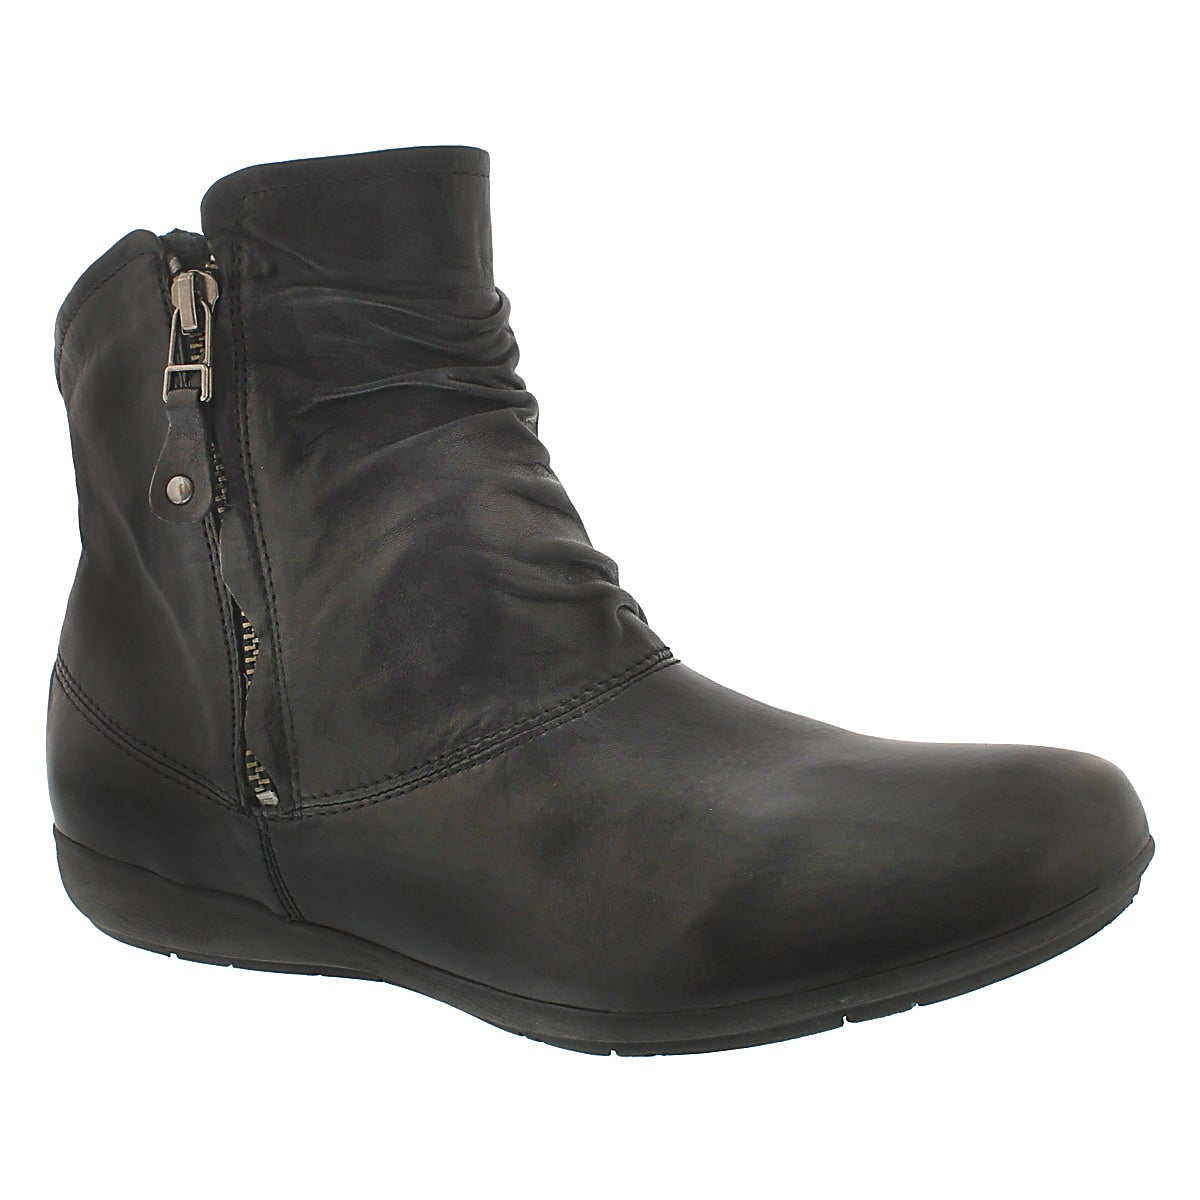 Women's FAYE 05 black leather casual booties